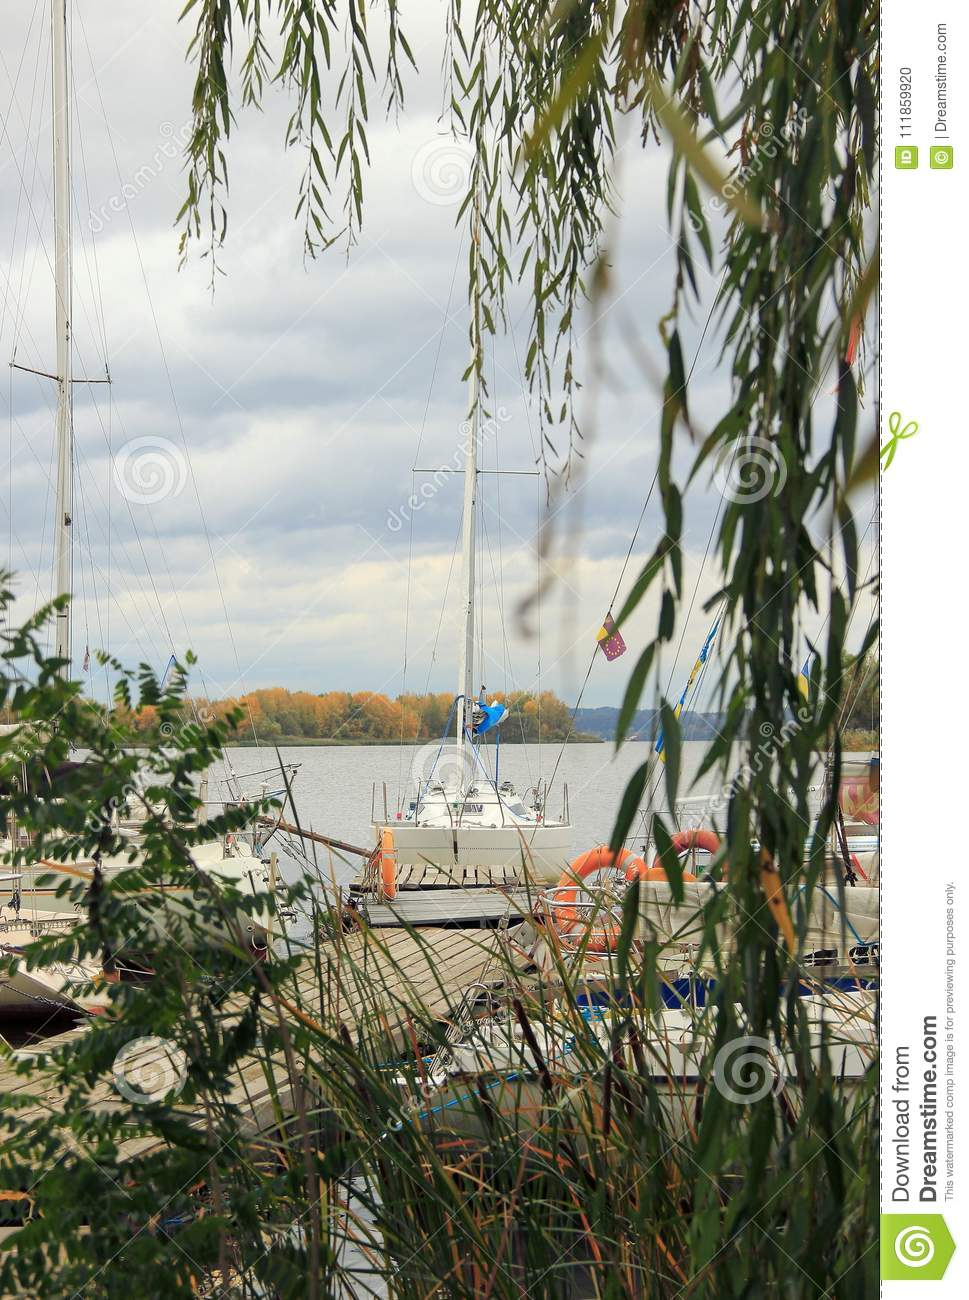 Yachts on the river Dnipro